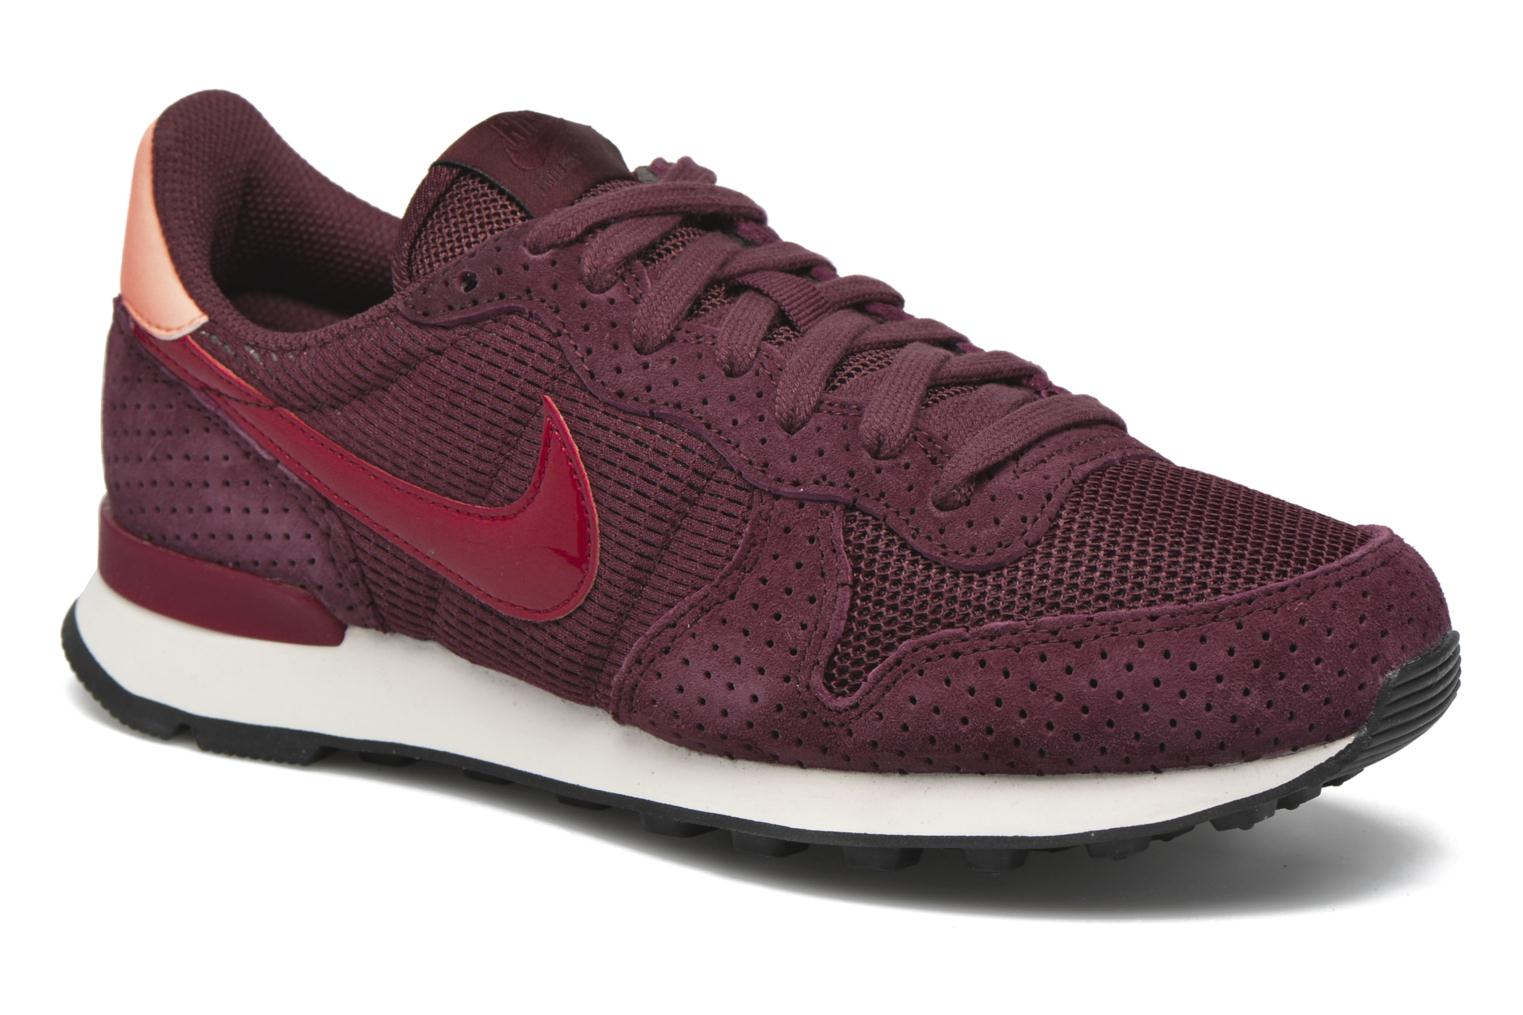 Particle Rose/Particle Rose-Vast Grey Nike W Internationalist Se (Rose)